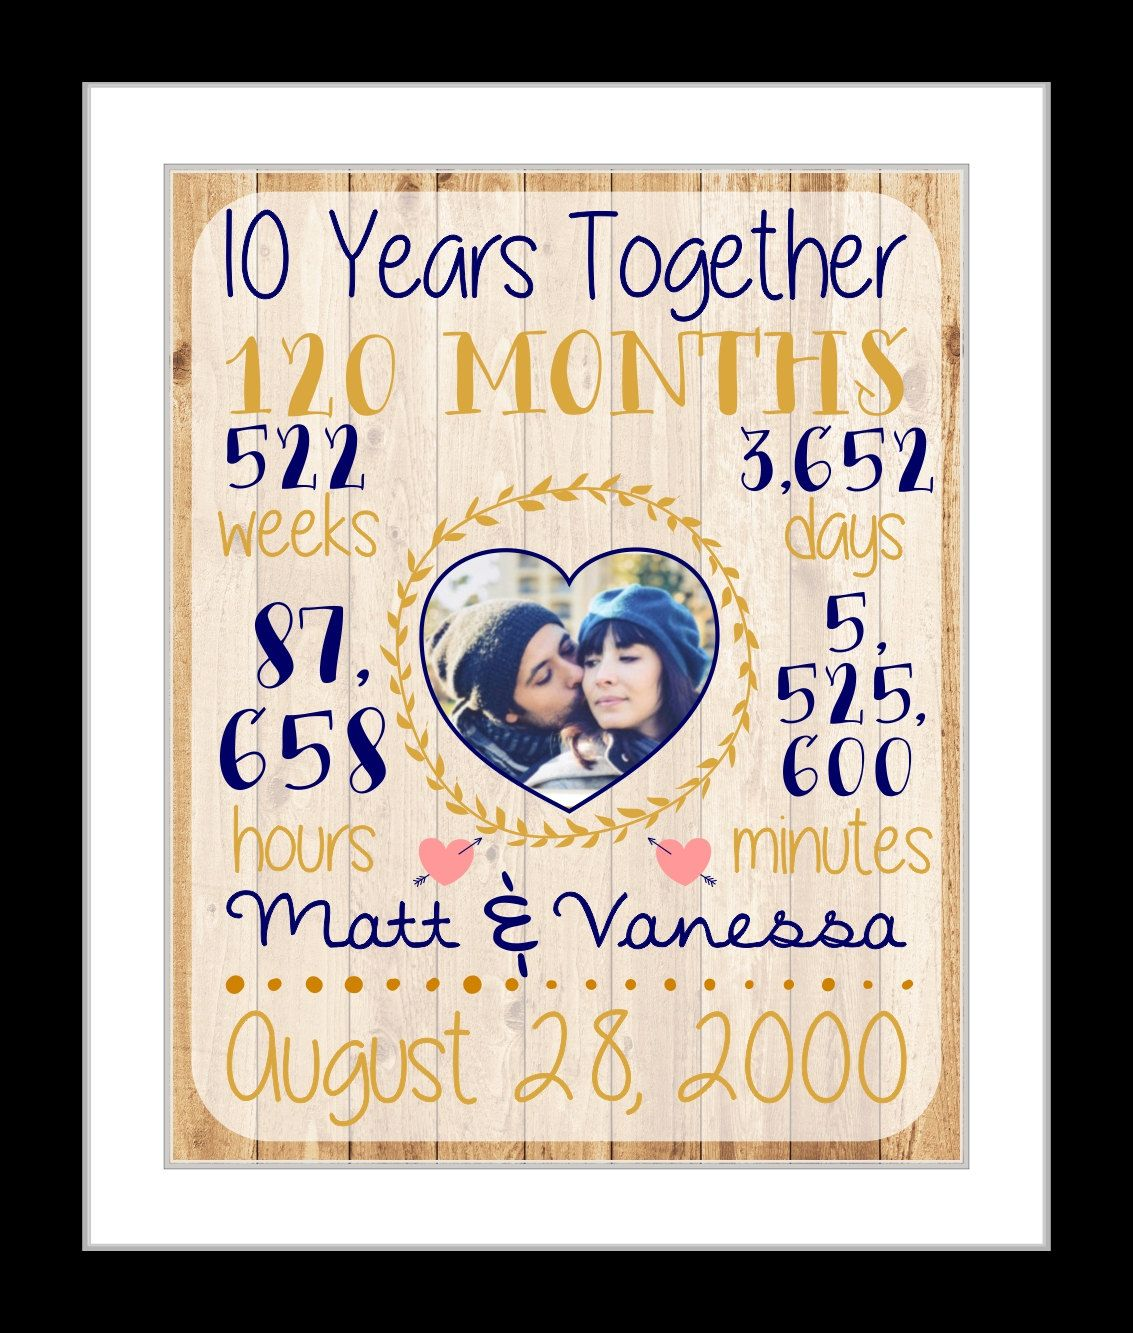 1st year dating anniversary gift ideas Wichita Falls